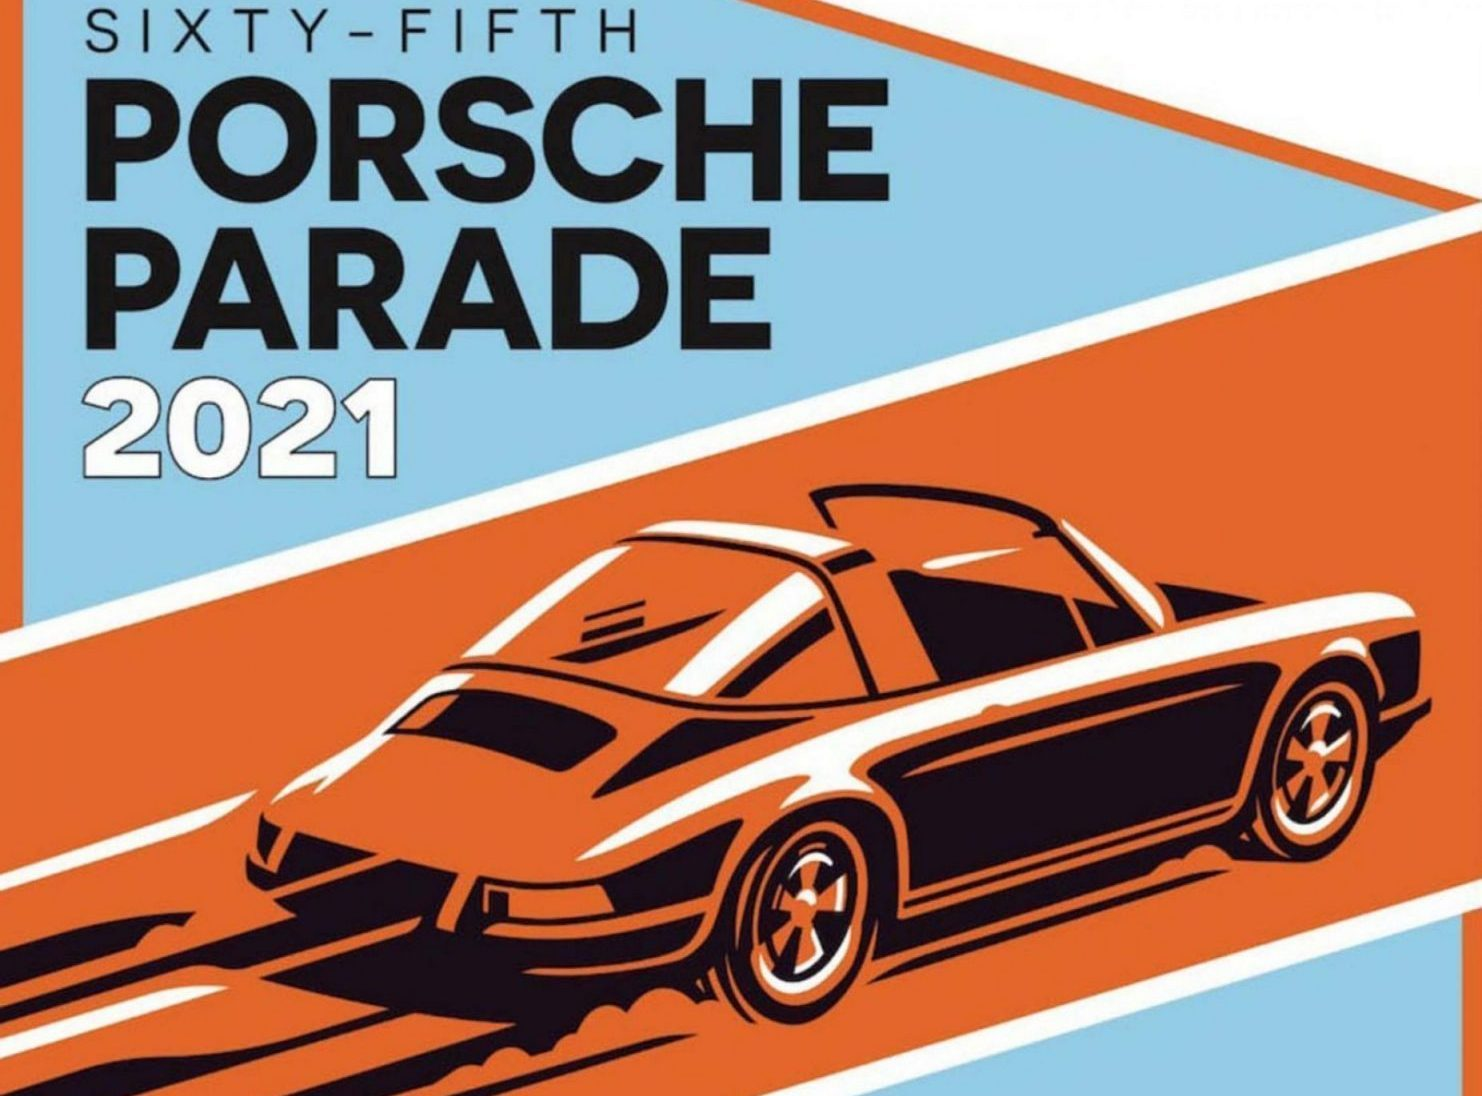 2021 Porsche Parade - French Lick Indiana - July 11-17 - Phase II Registration Opens, April 7, 2021